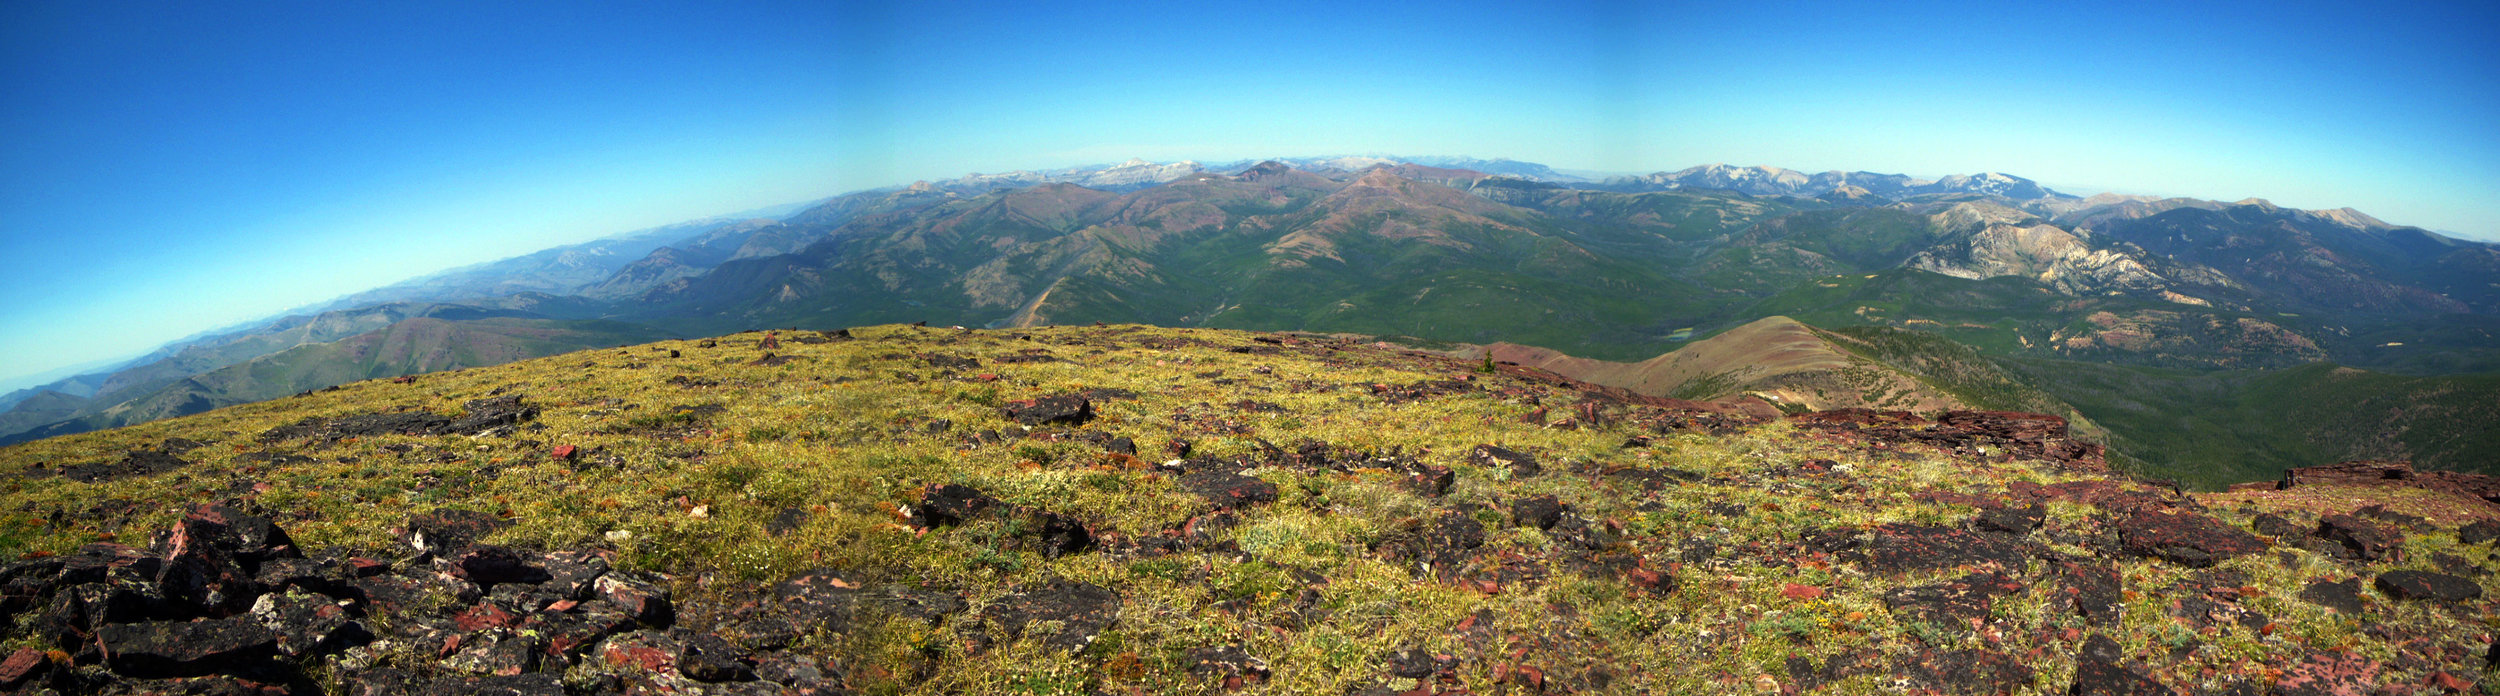 The Scapegoat Wilderness from Red Mountain - Photo by Tim Giller